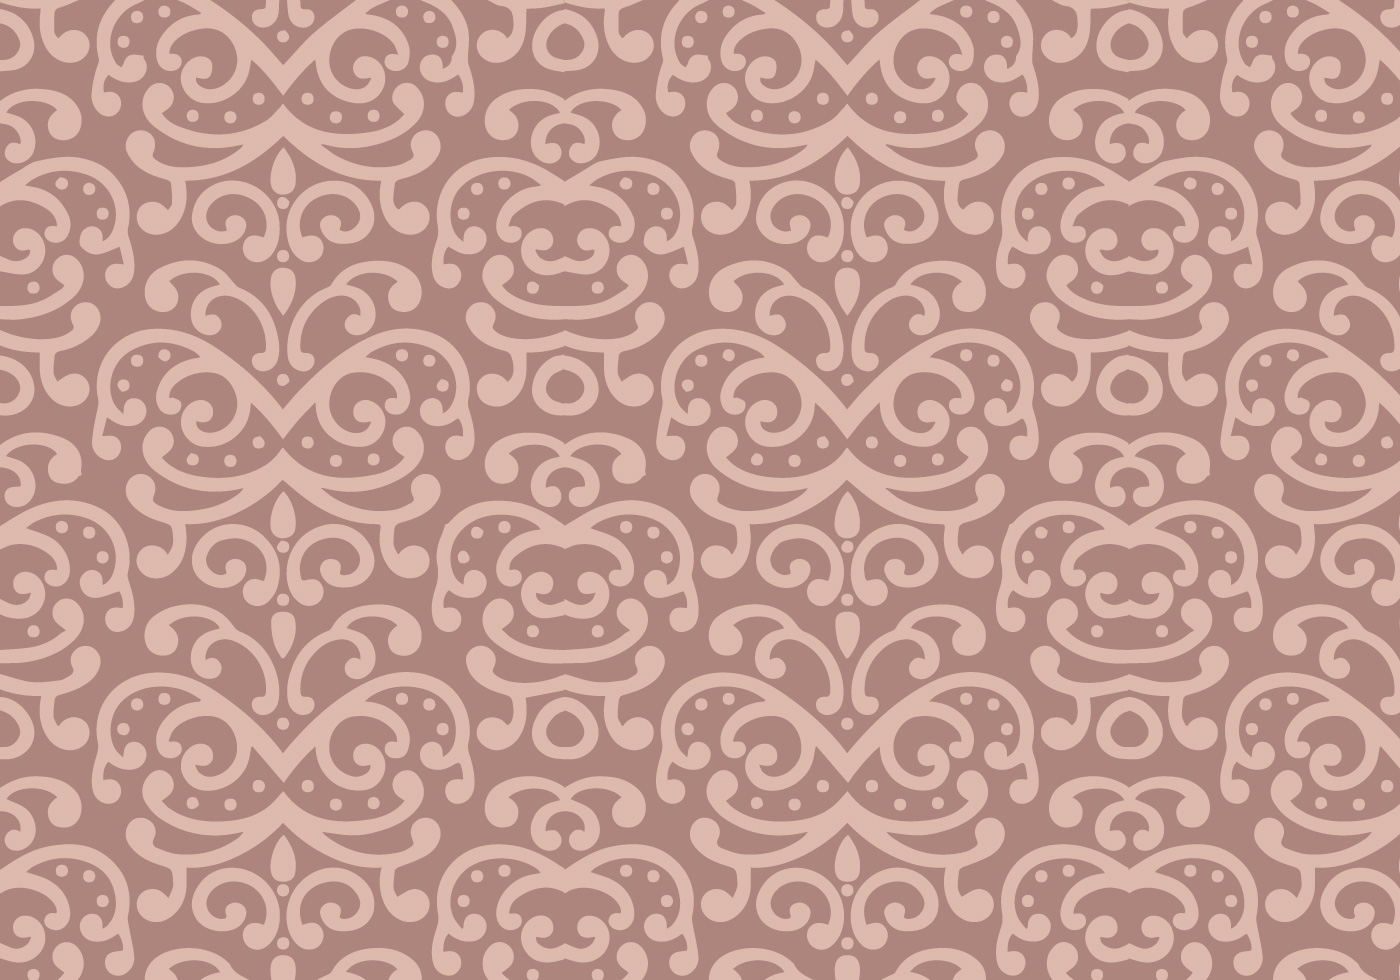 Pastel leaf pattern background vector download free vector art stock graphics images - Pastel lace wallpaper ...